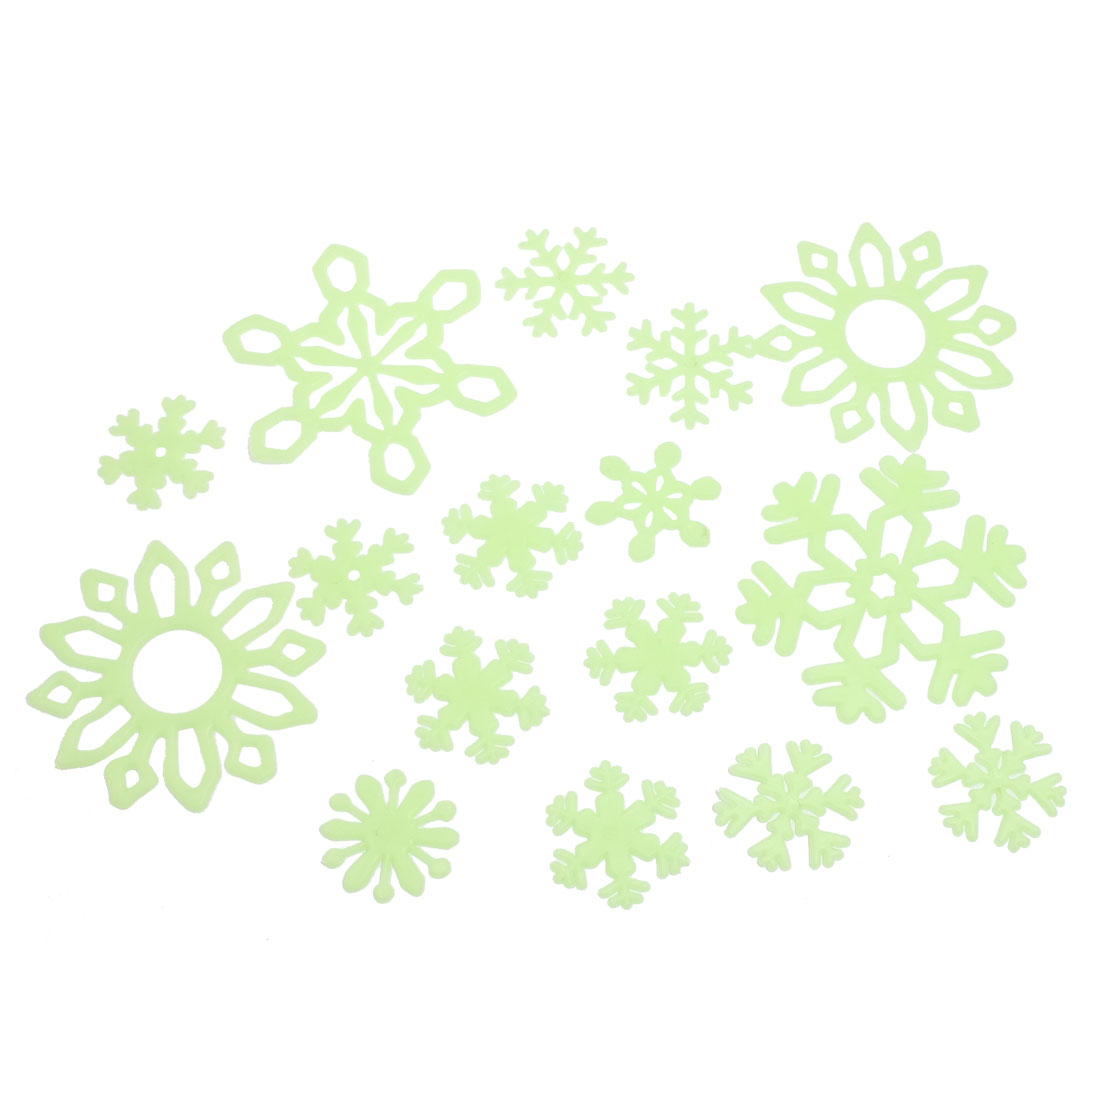 16pcs Christmas Home Wall Snowflake Design Glow In The Dark Stickers Decor